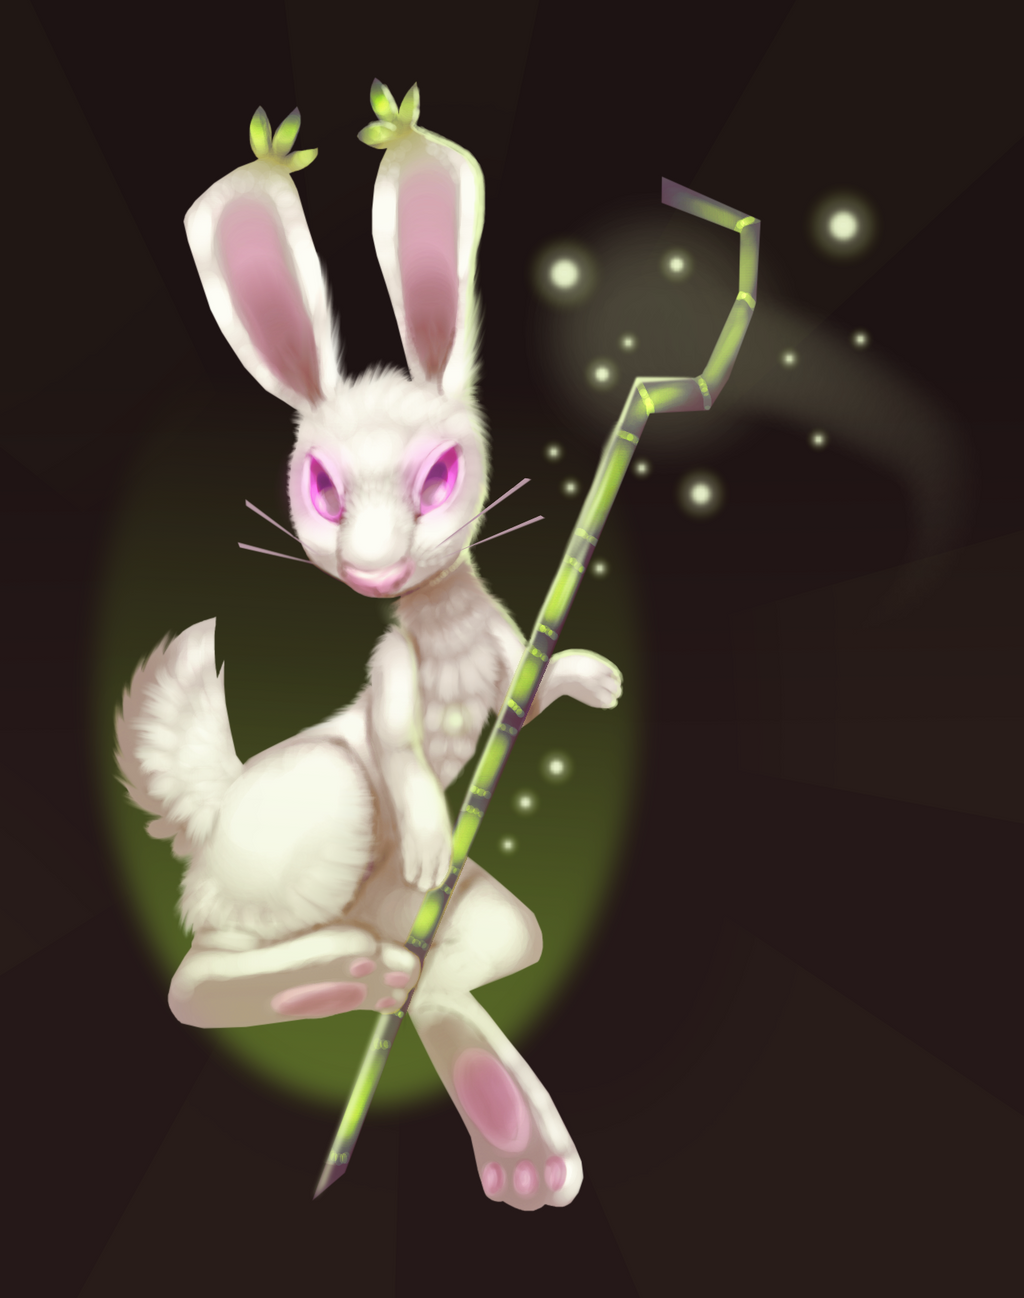 Rabbit by Kikirrikitiki